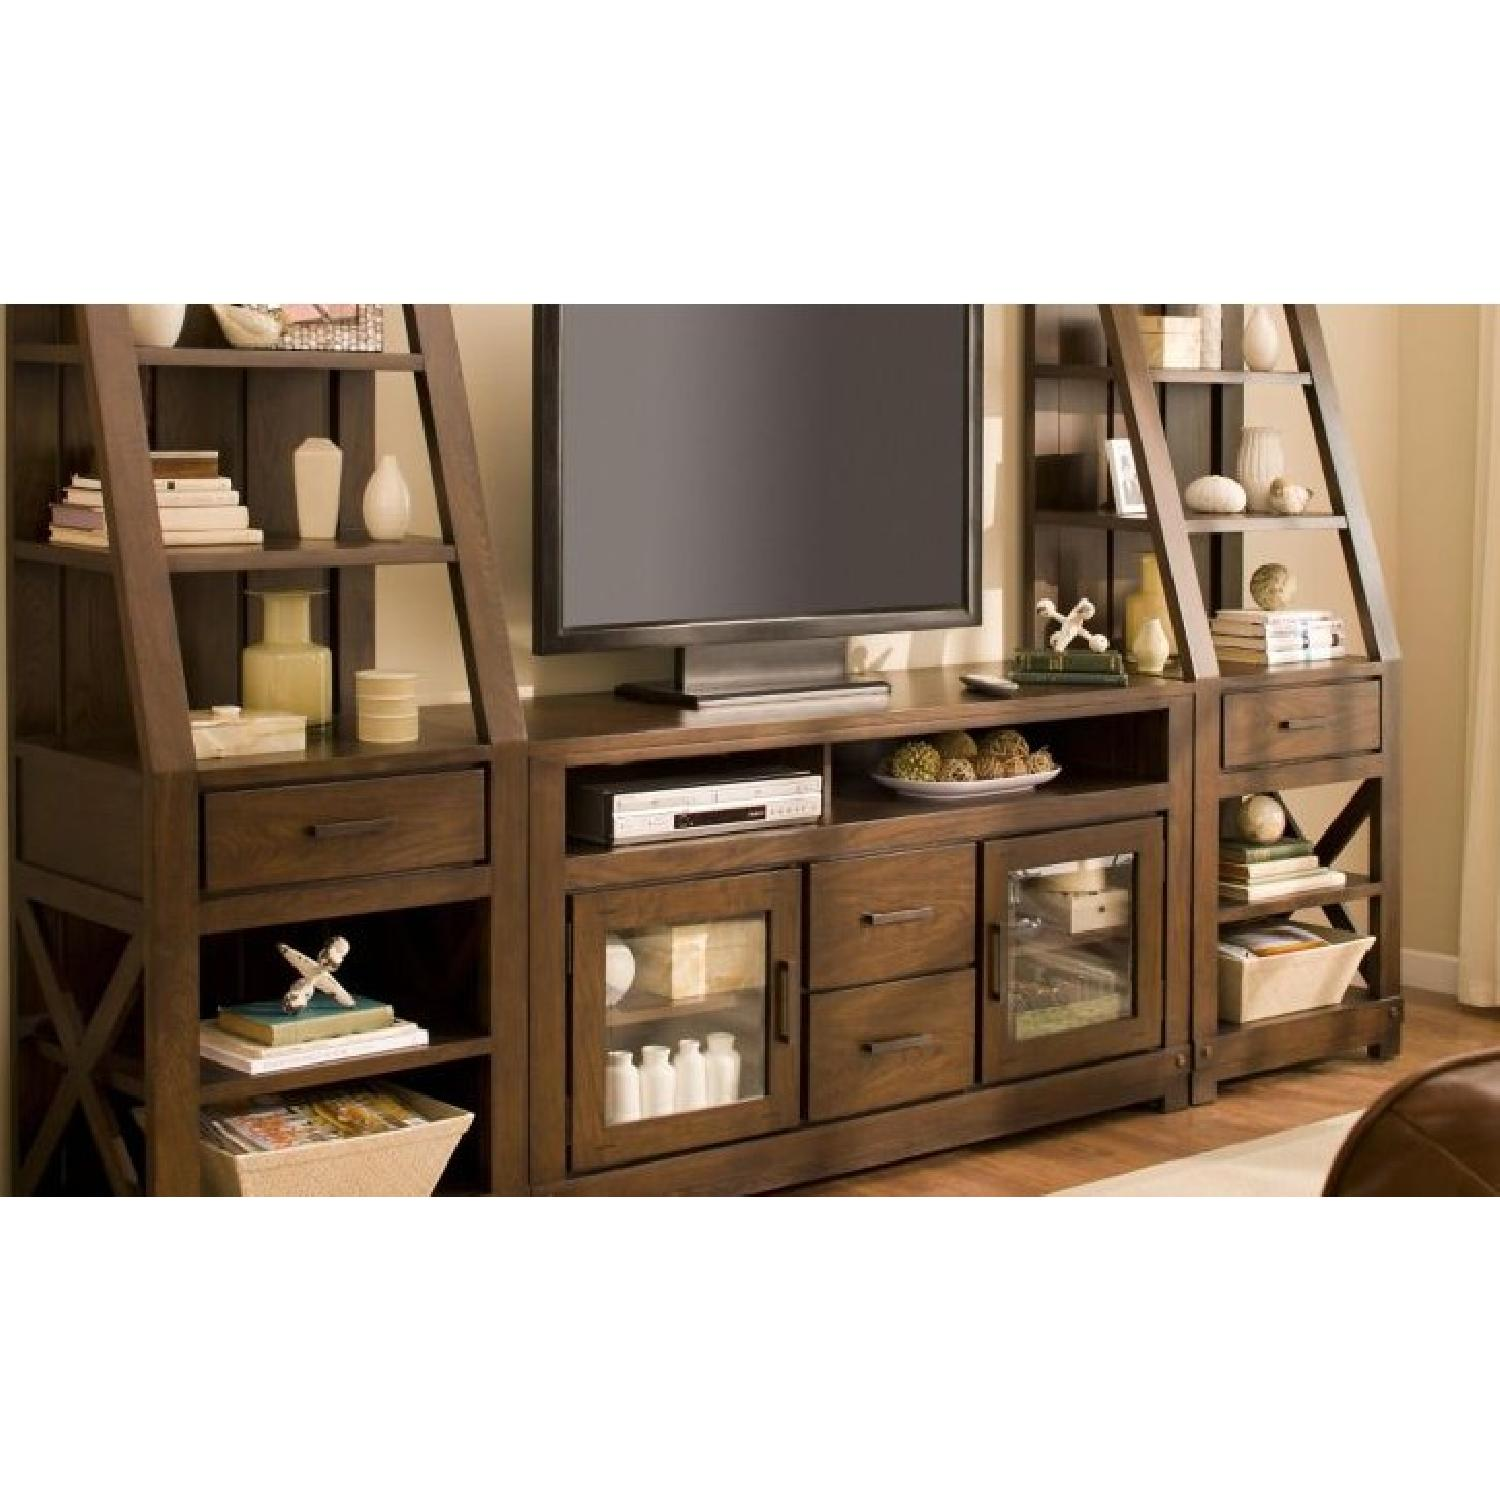 Raymour & Flanigan TV Entertainment Center w/ Bookshelves-1